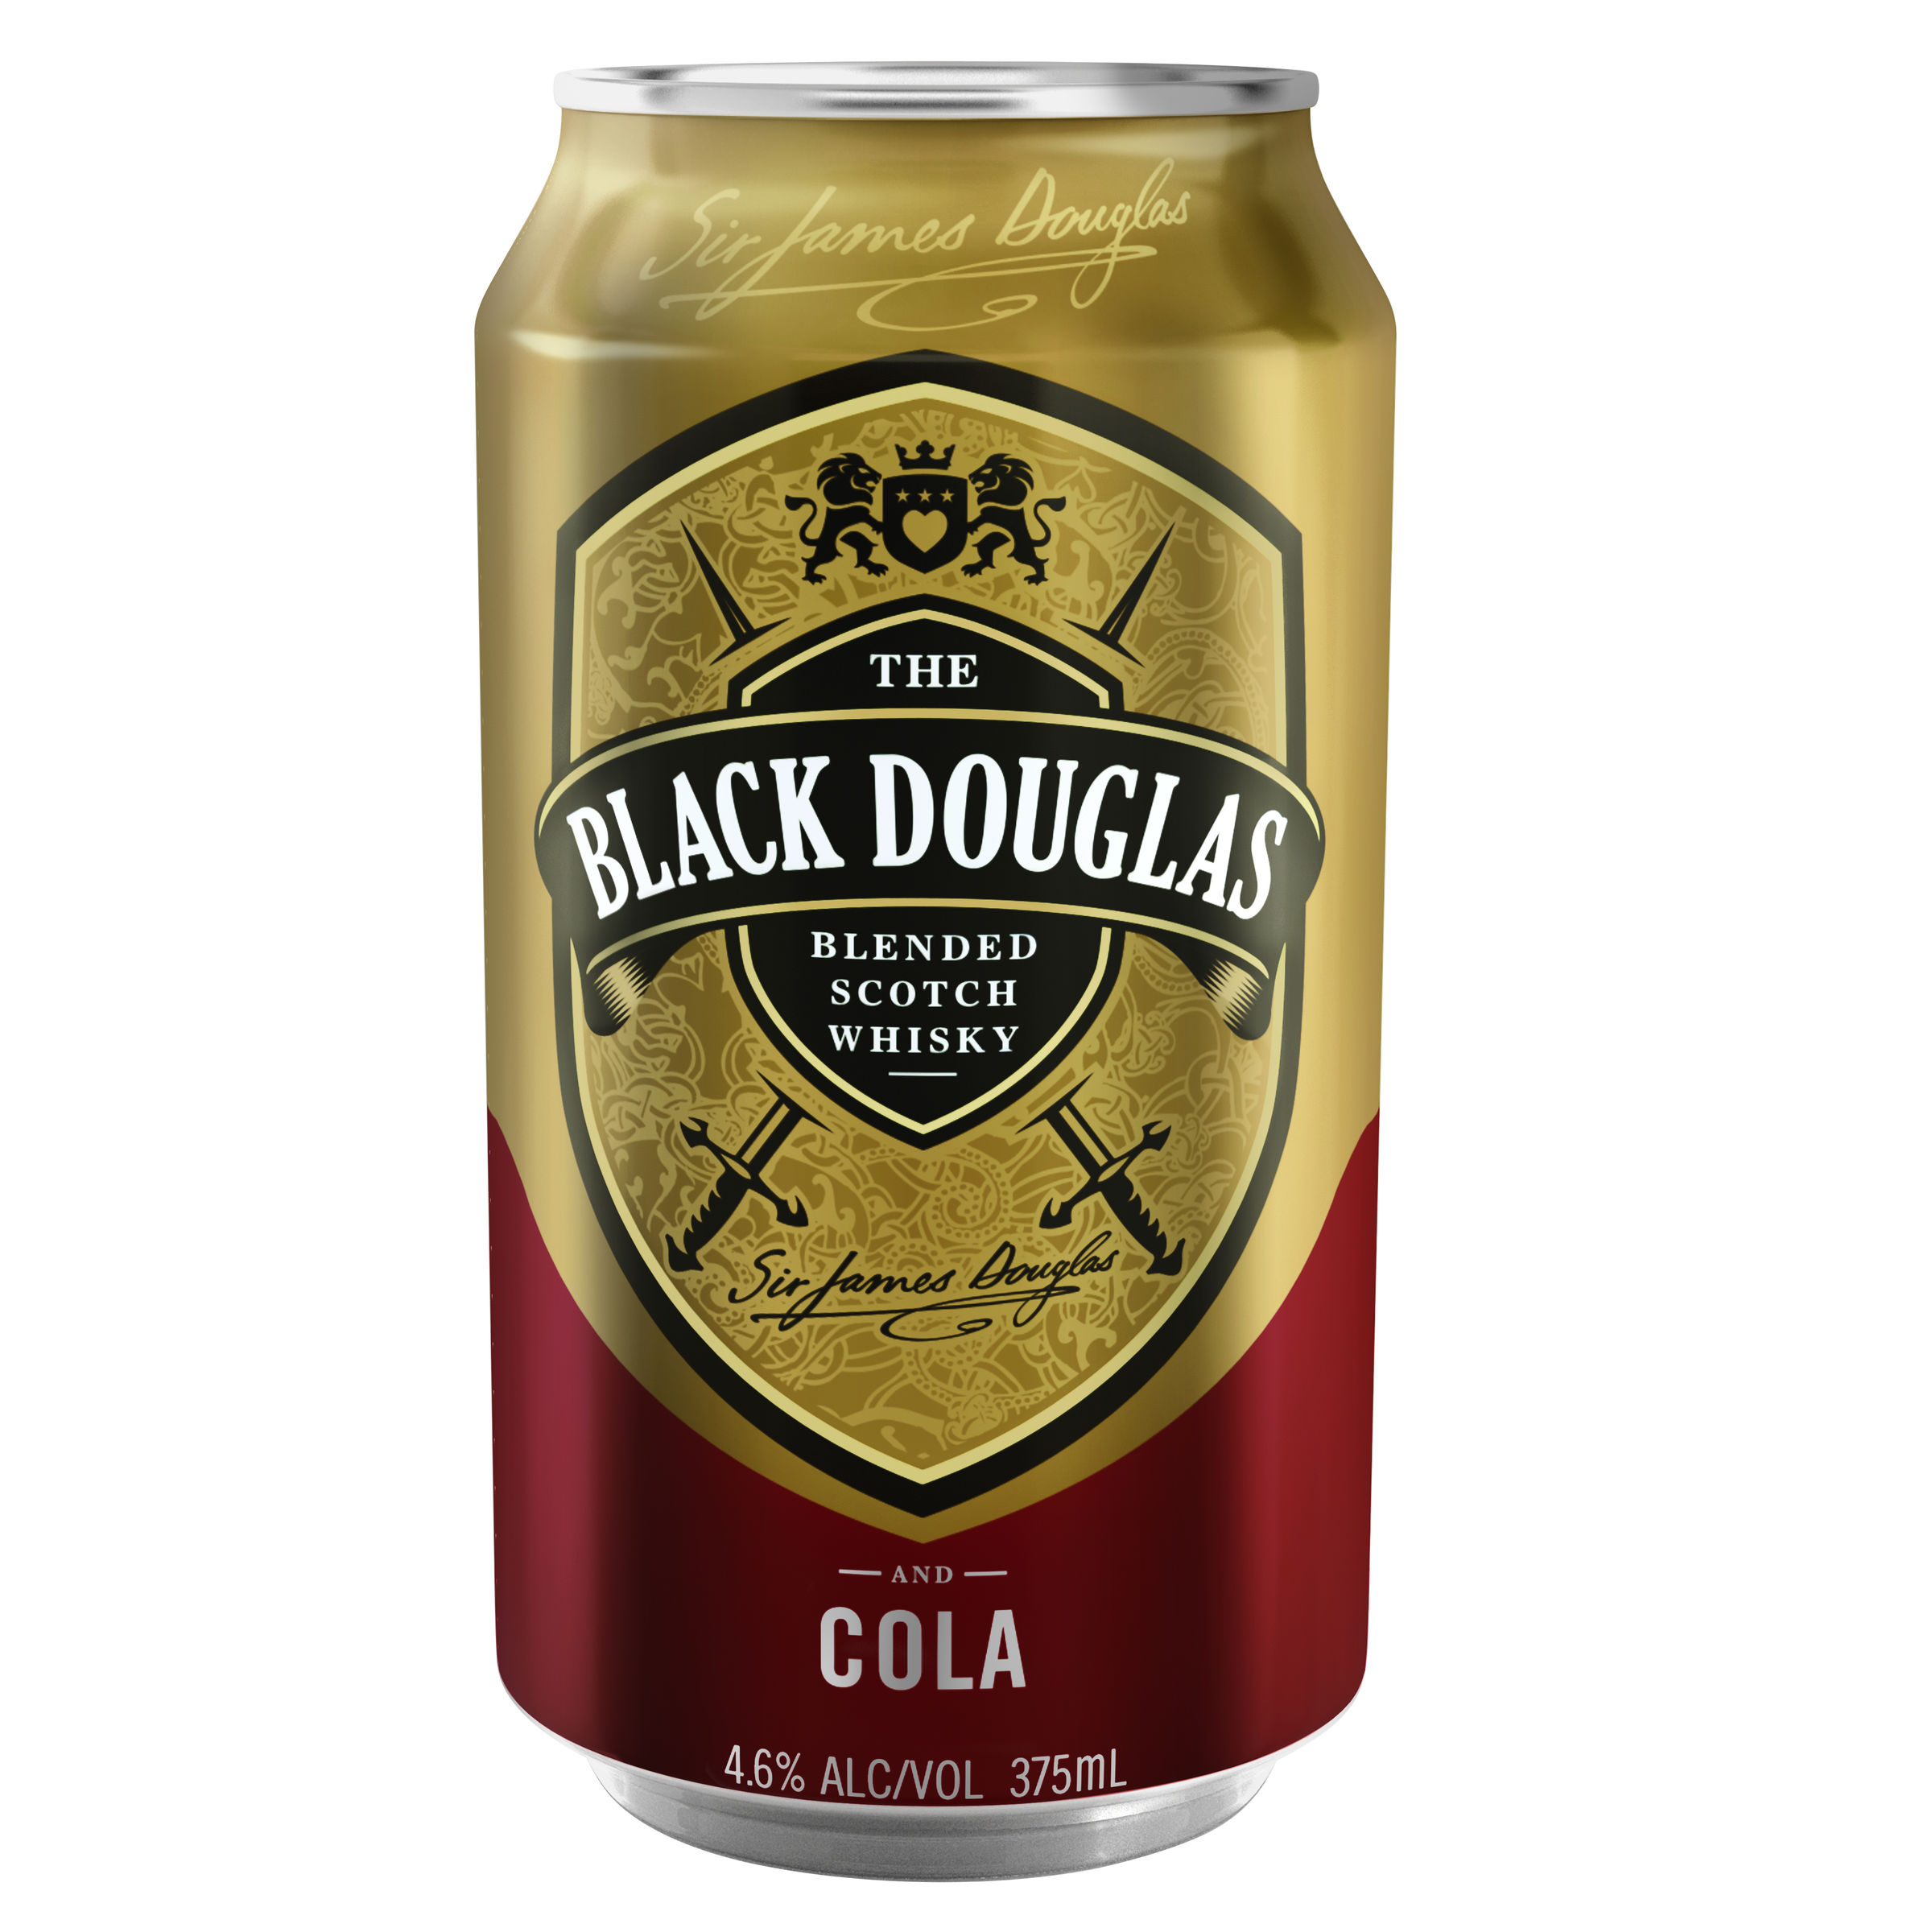 BLACK DOUGLAS & COLA CAN